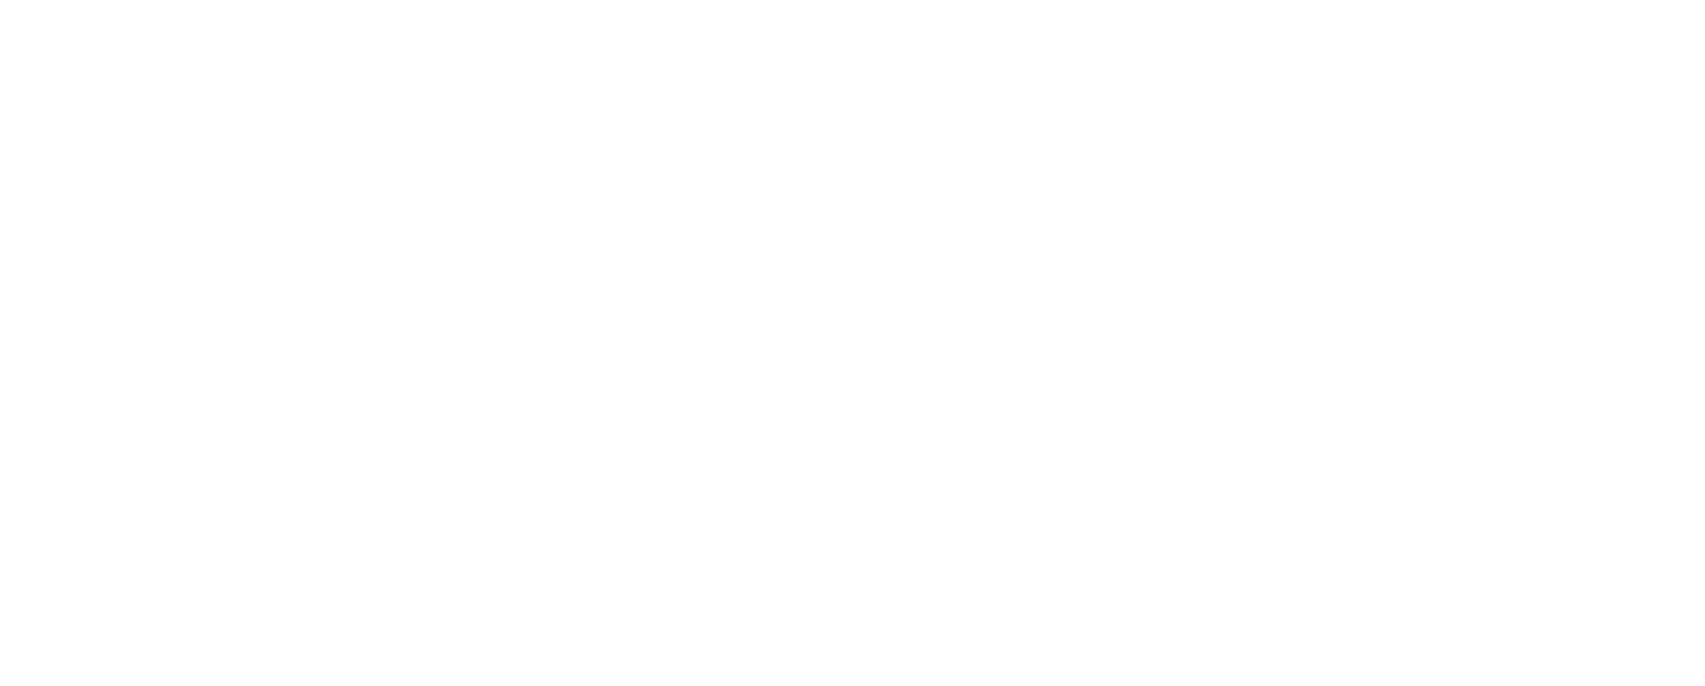 Association des Architectes en pratique privée